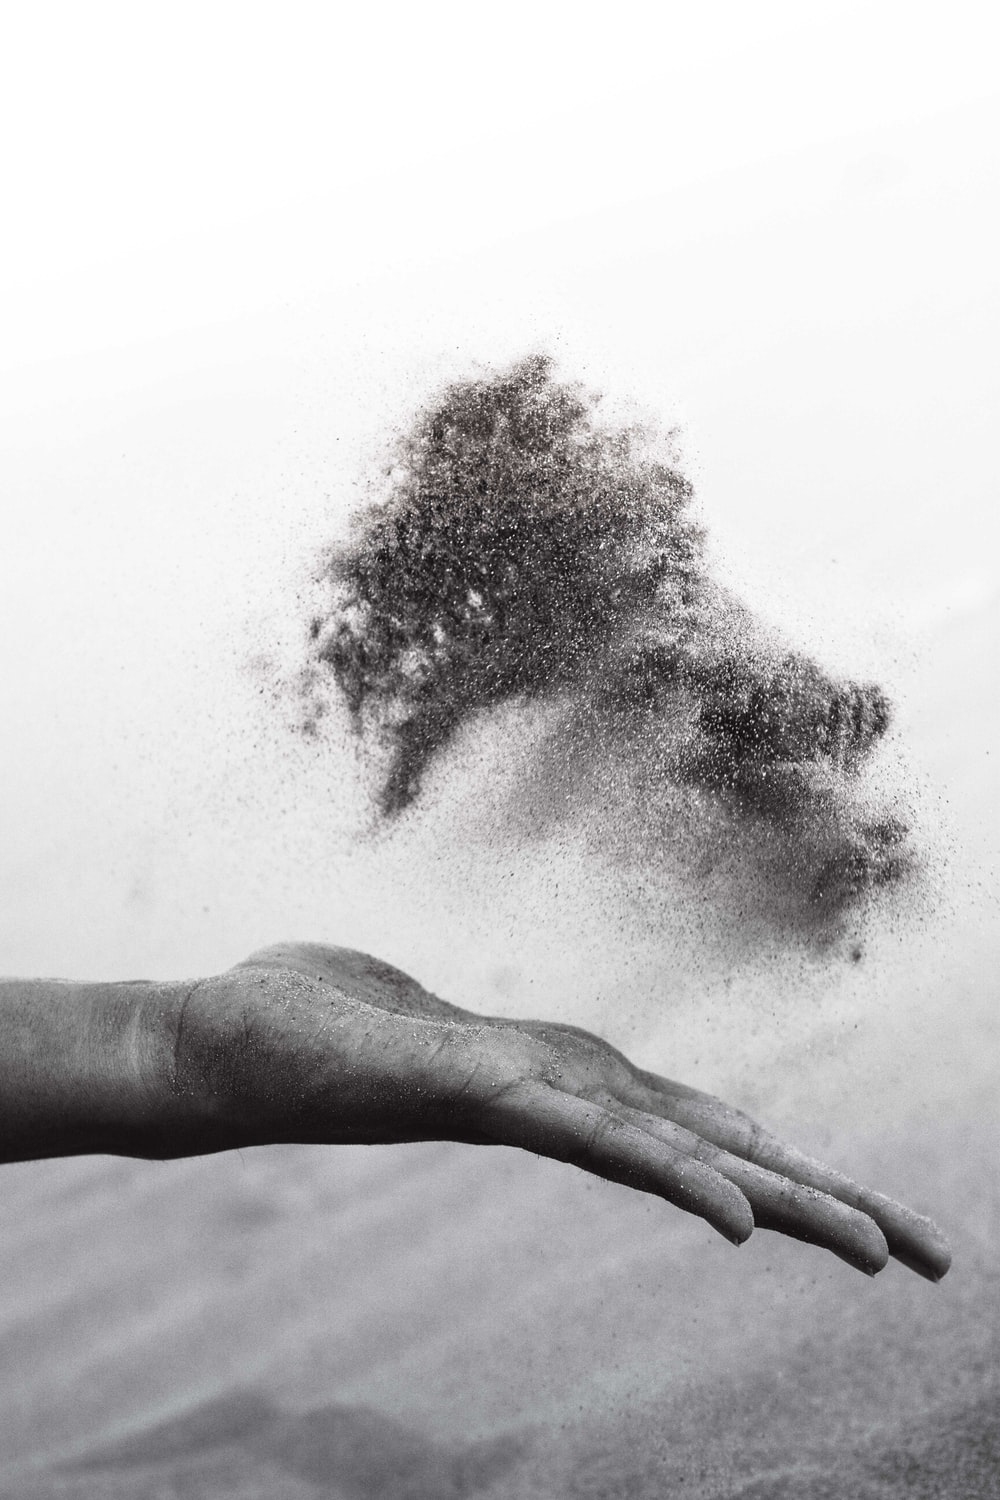 grayscaled photography of person's hand spreading sand